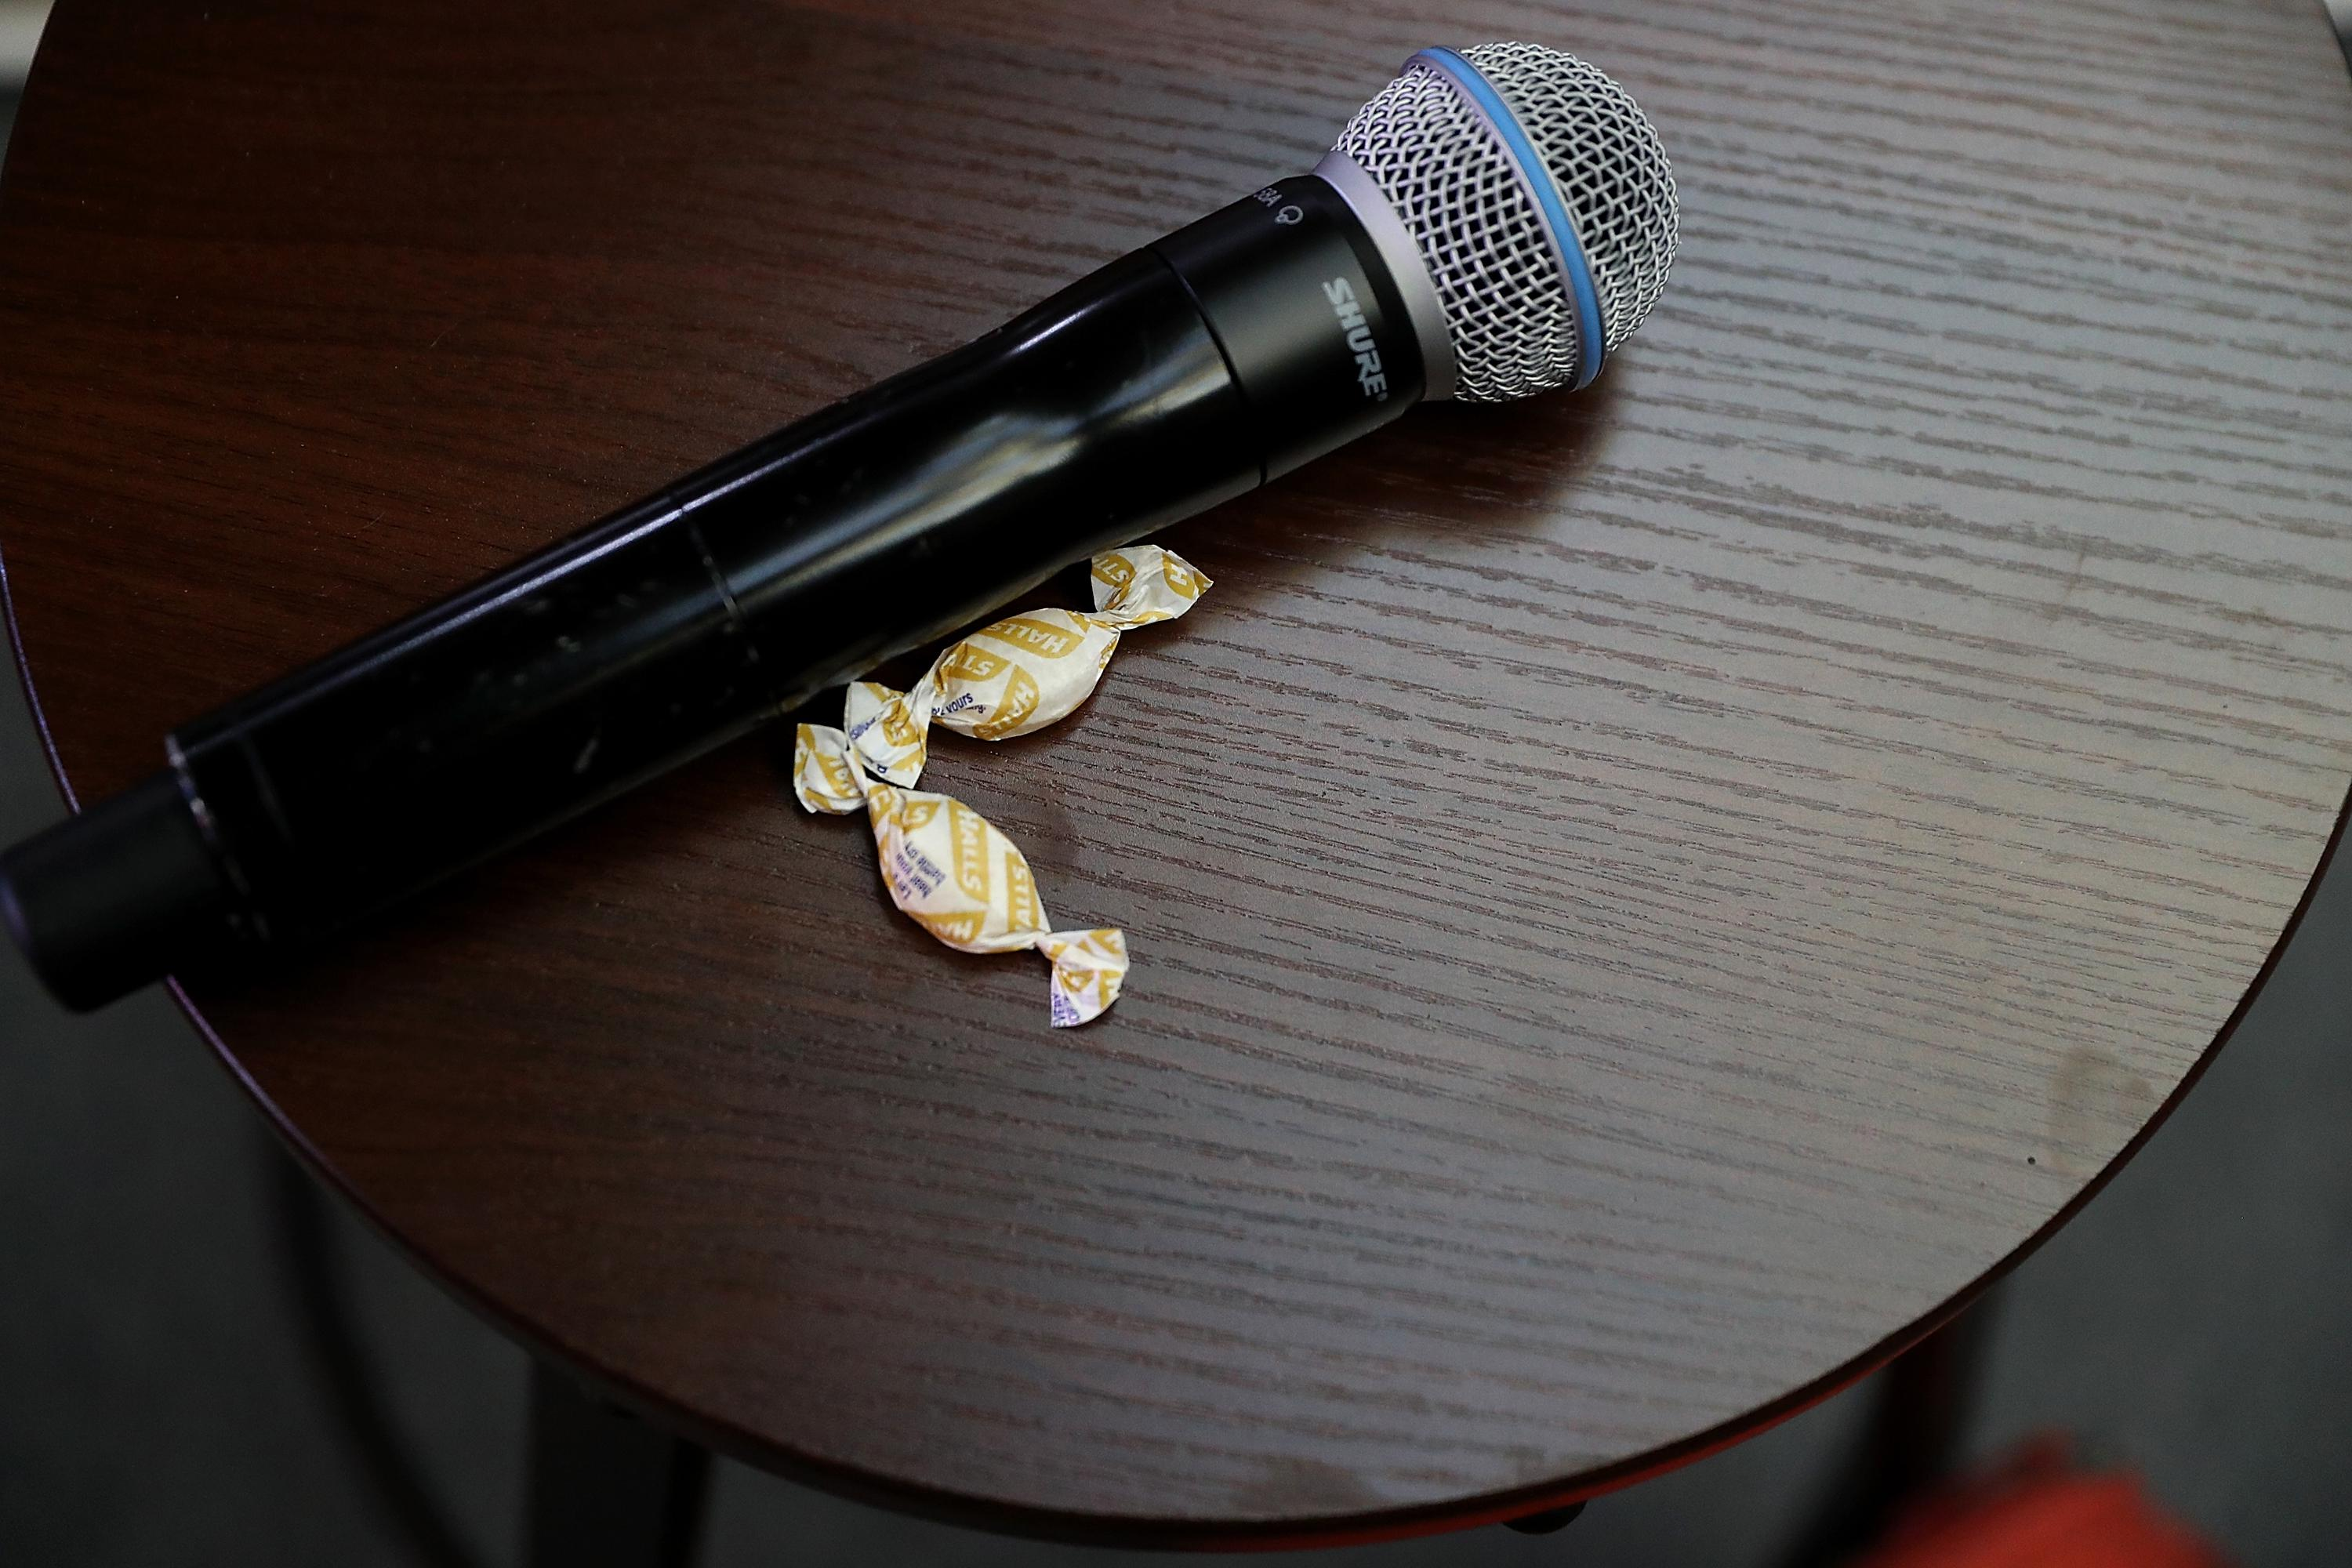 Microphone and cough drops on a table.